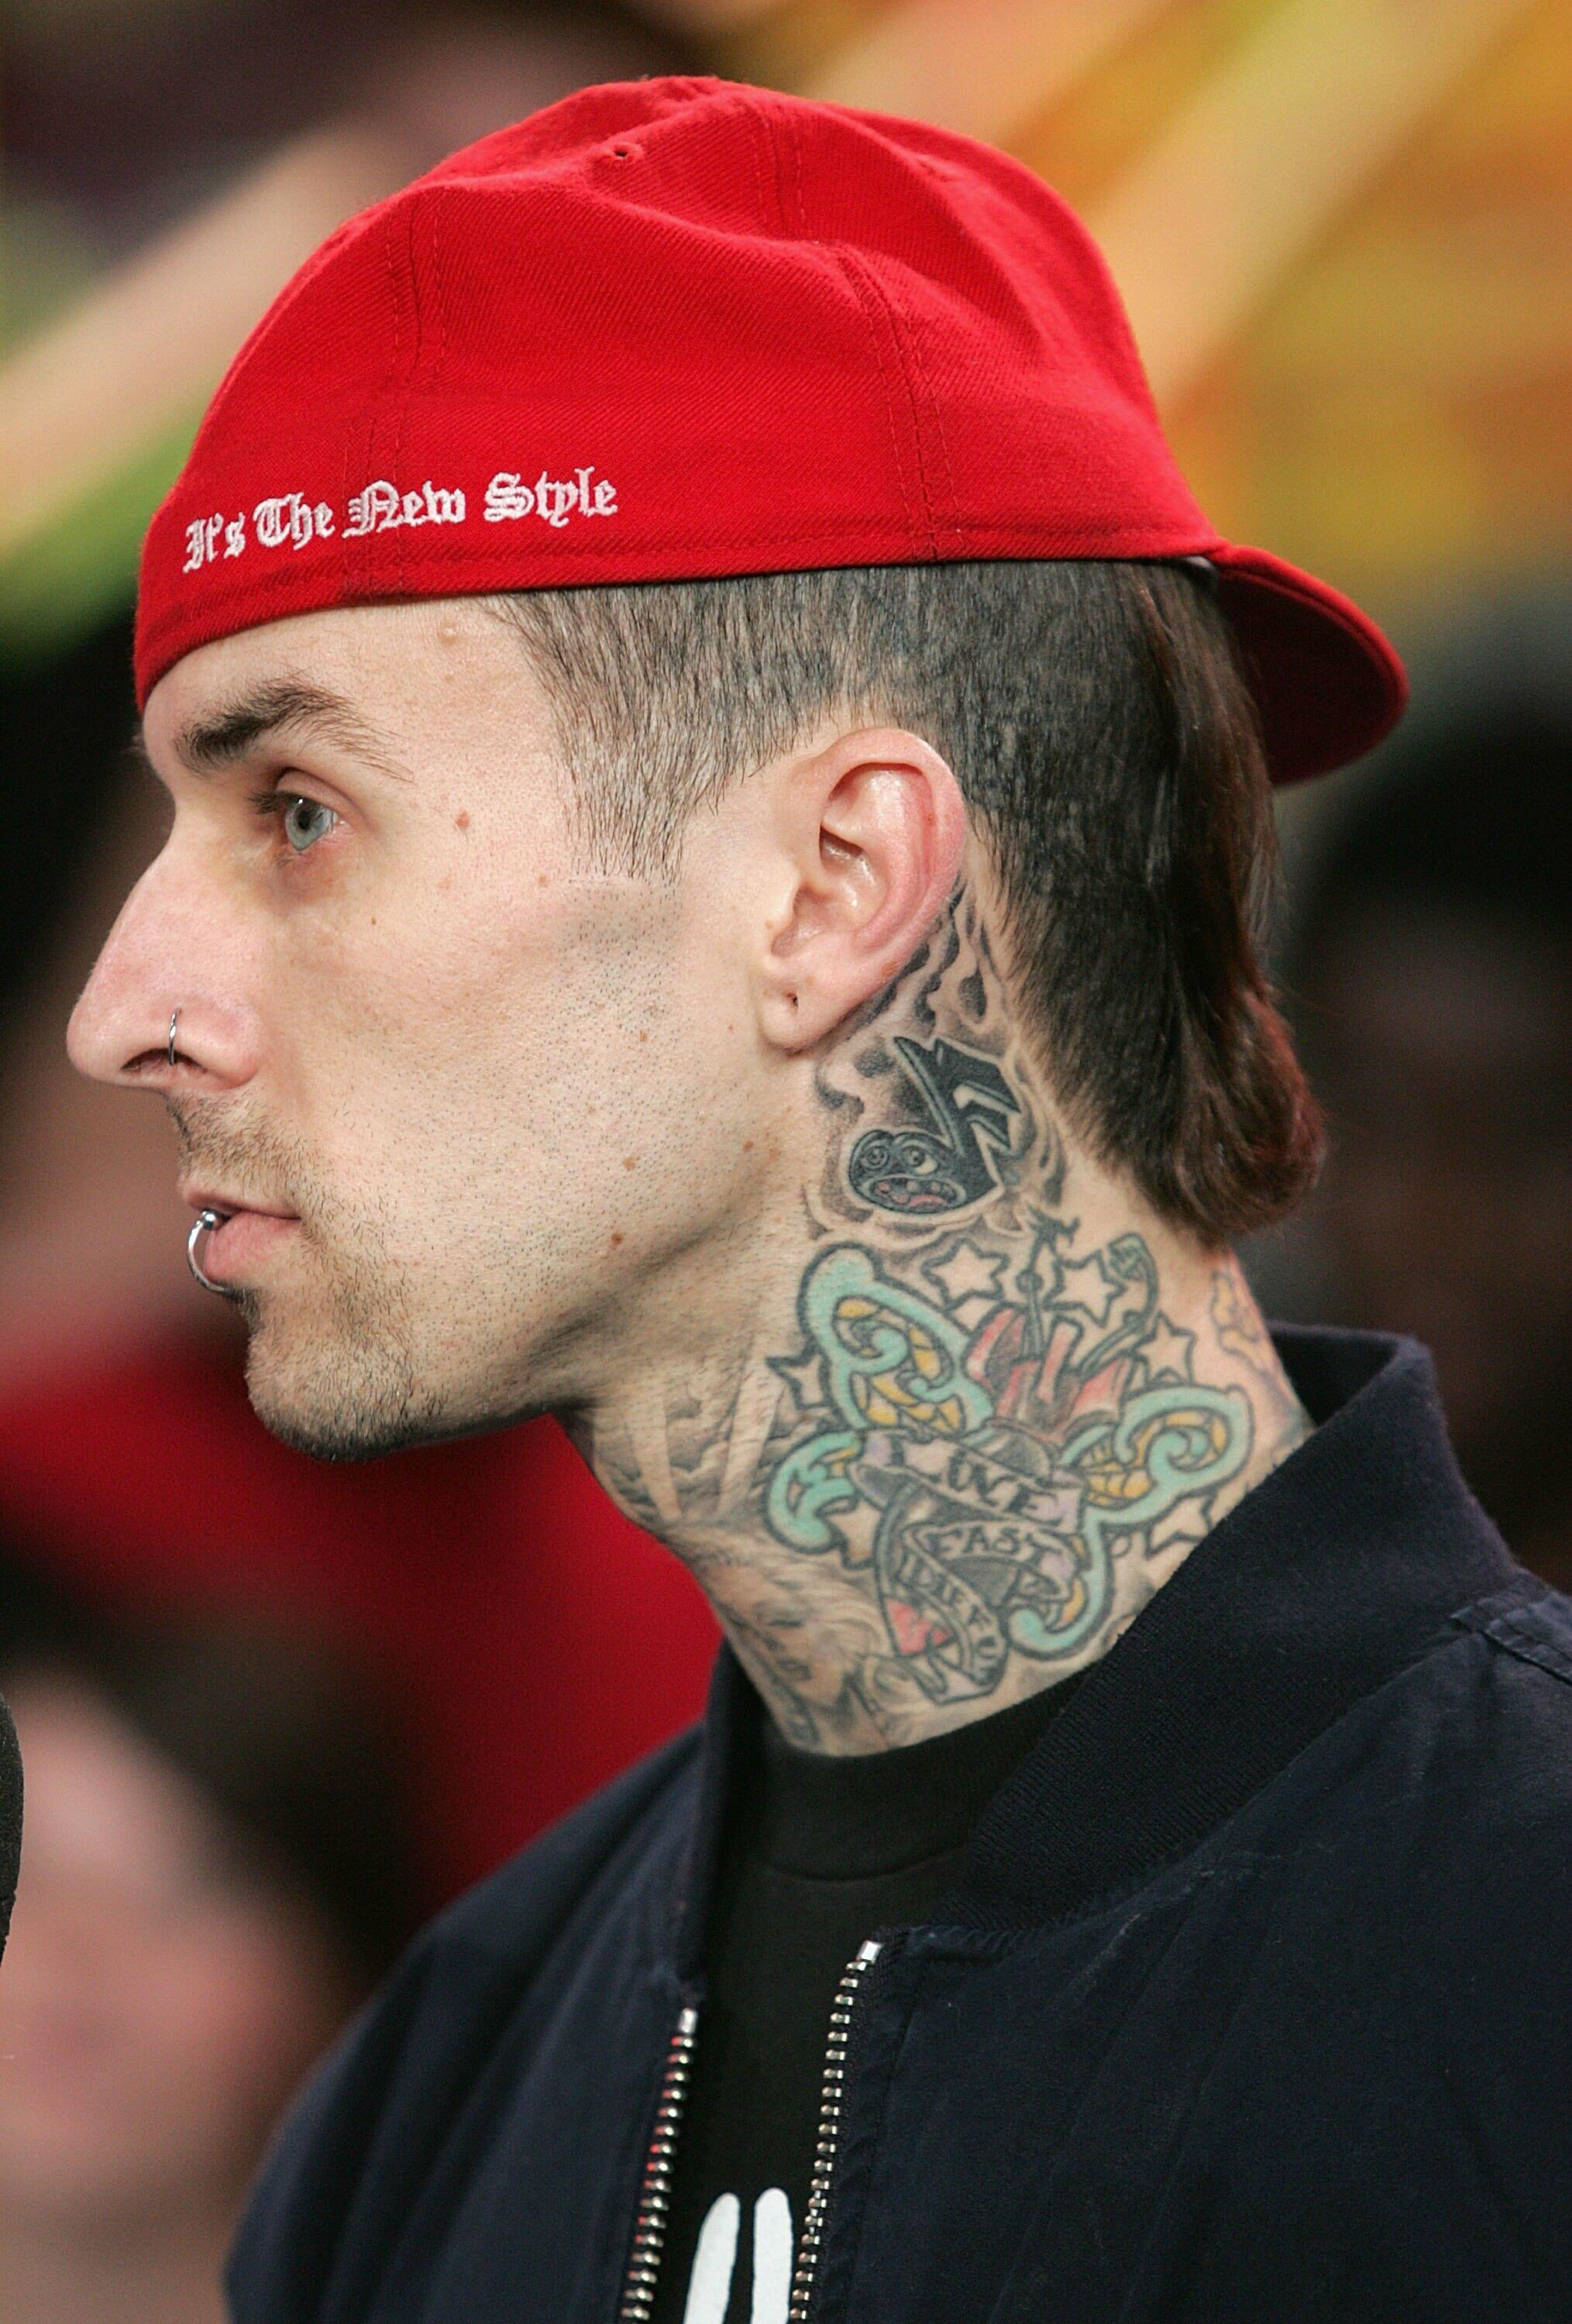 NEW YORK - NOVEMBER 17:  (U.S. TABS OUT) Musician Travis Barker of the group (+44) appears onstage during MTV's Total Request Live at the MTV Times Square Studios on November 17, 2006 in New York City.  (Photo by Peter Kramer/Getty Images)